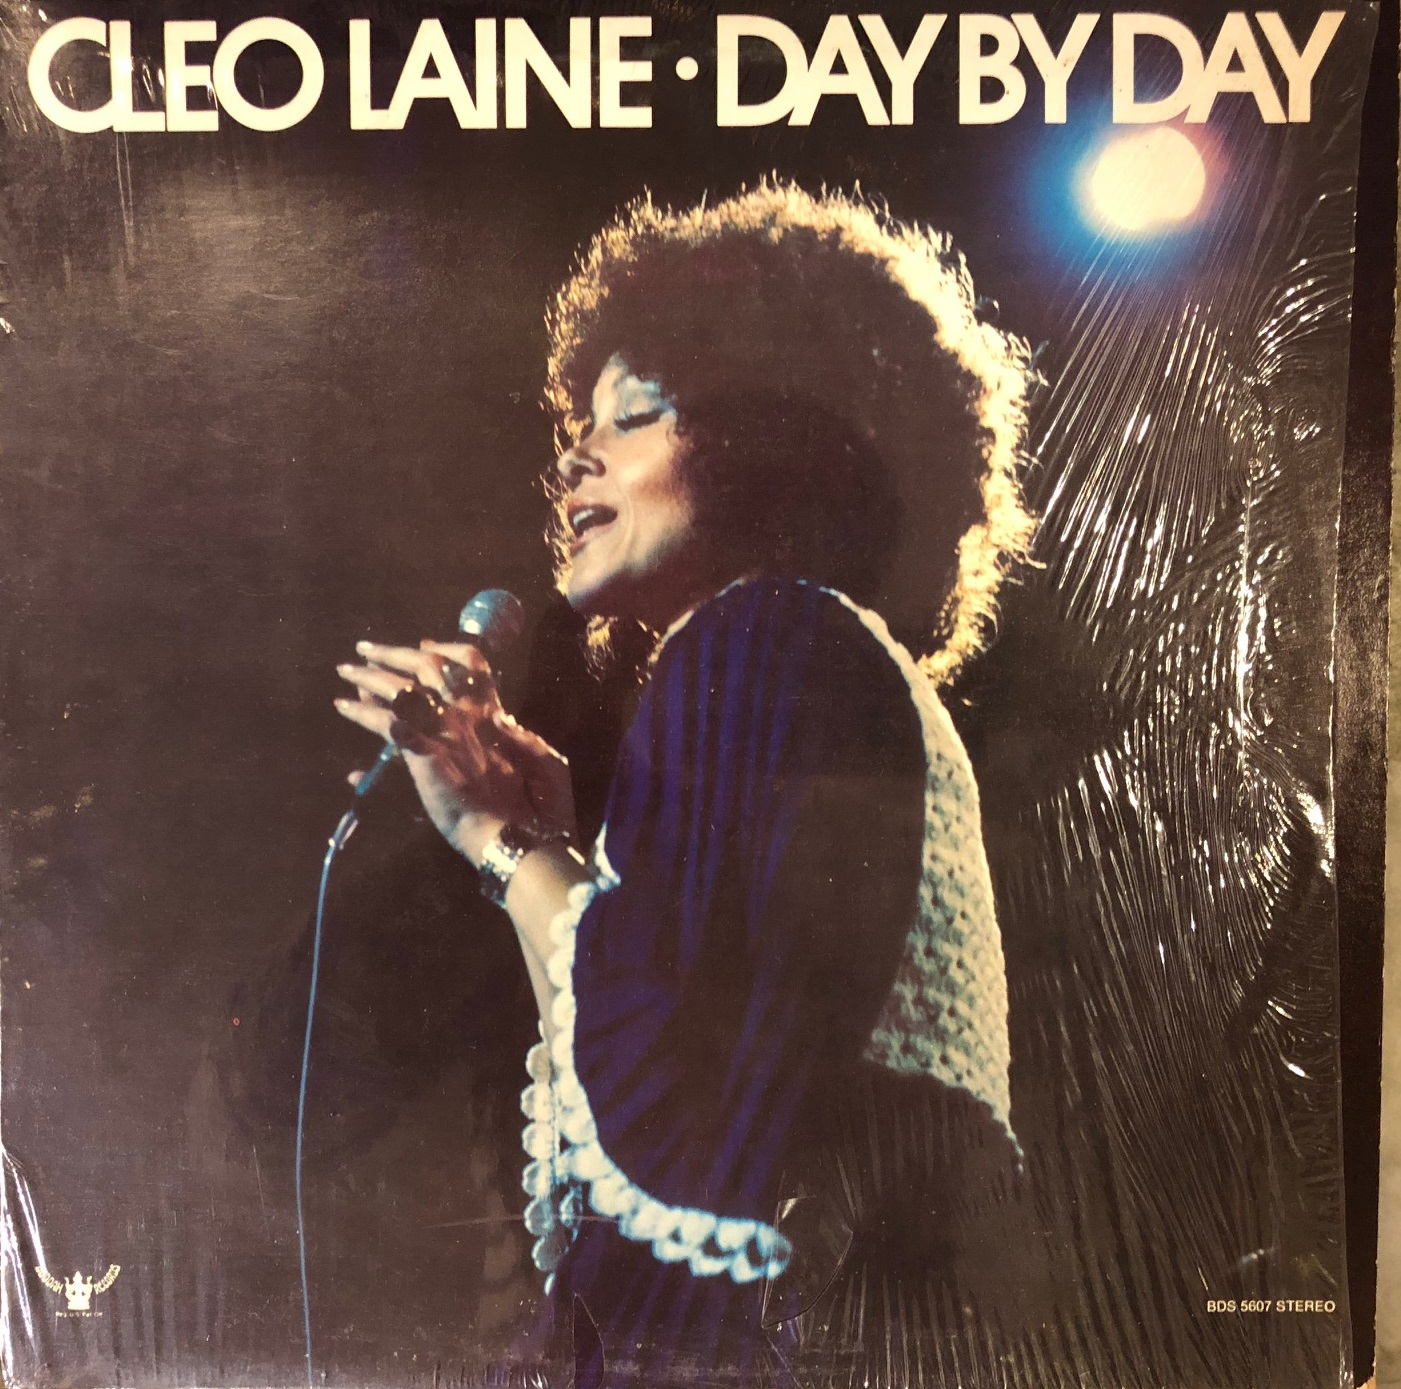 CLEO LAINE / DAY BY DAY